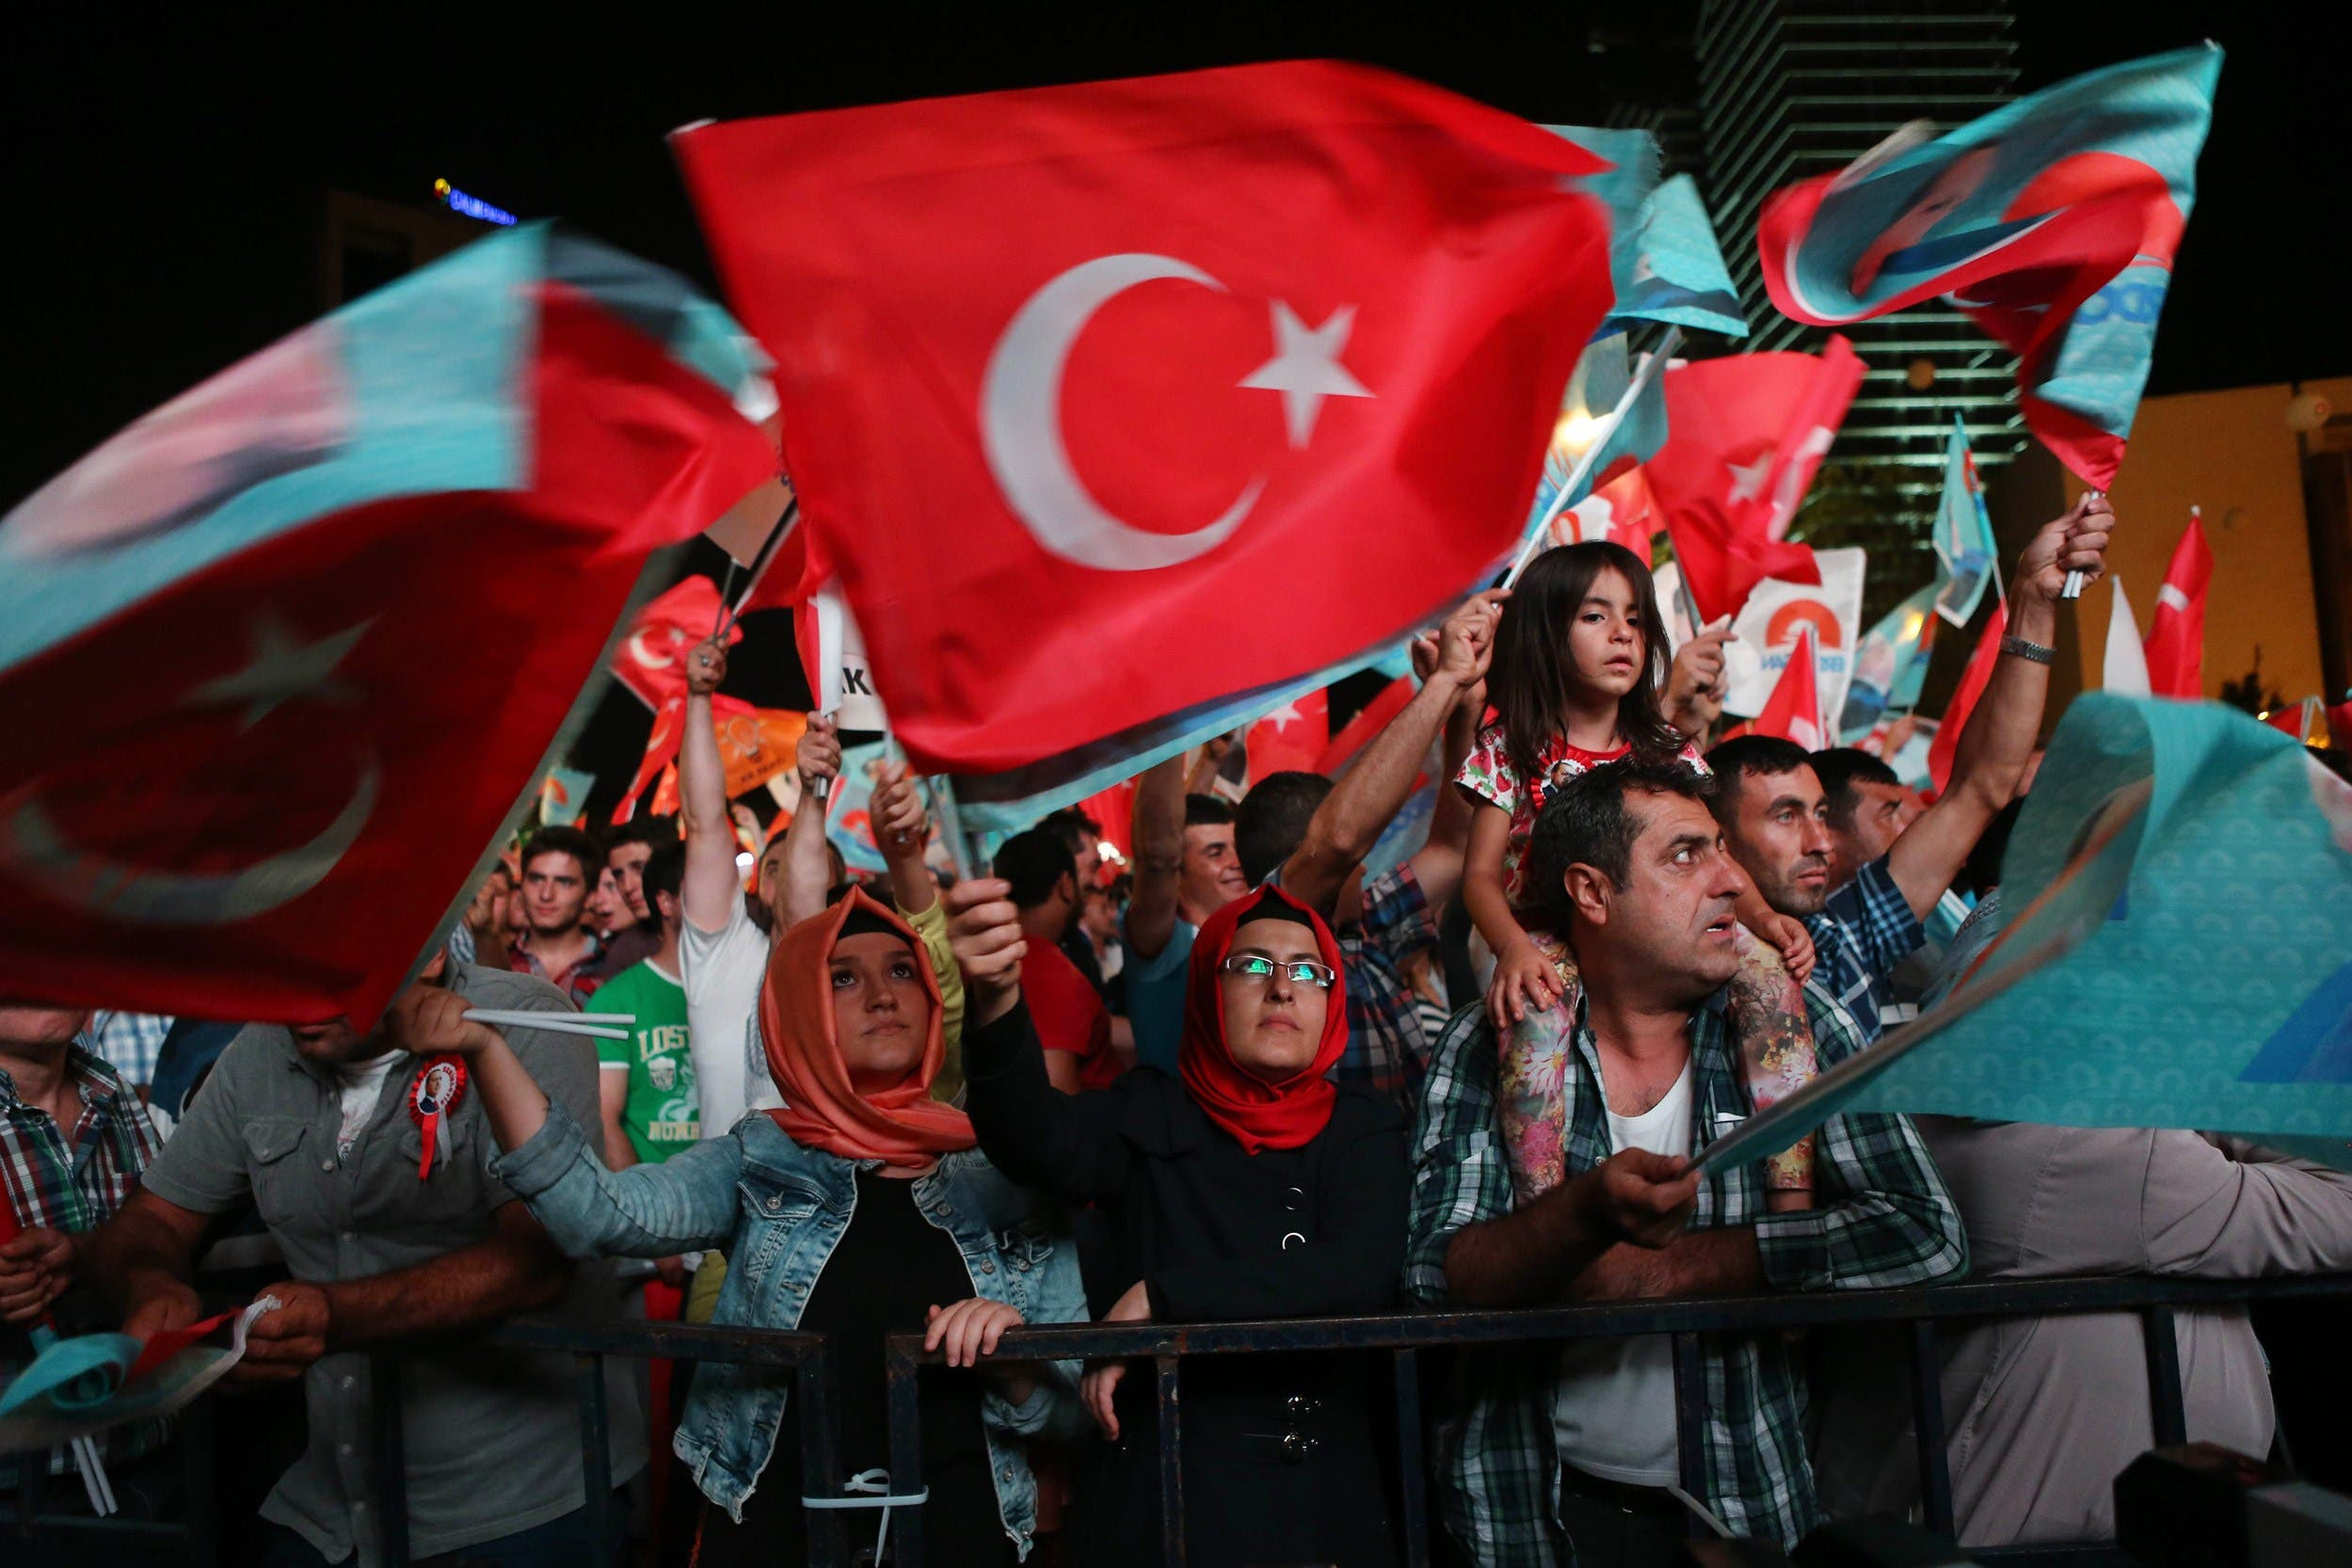 Supporters of Turkey's Prime Minister Recep Tayyip Erdogan celebrate his victory in the presidential election vote in front of the AKP party headquarters in Ankara on August 10, 2014. (AFP)